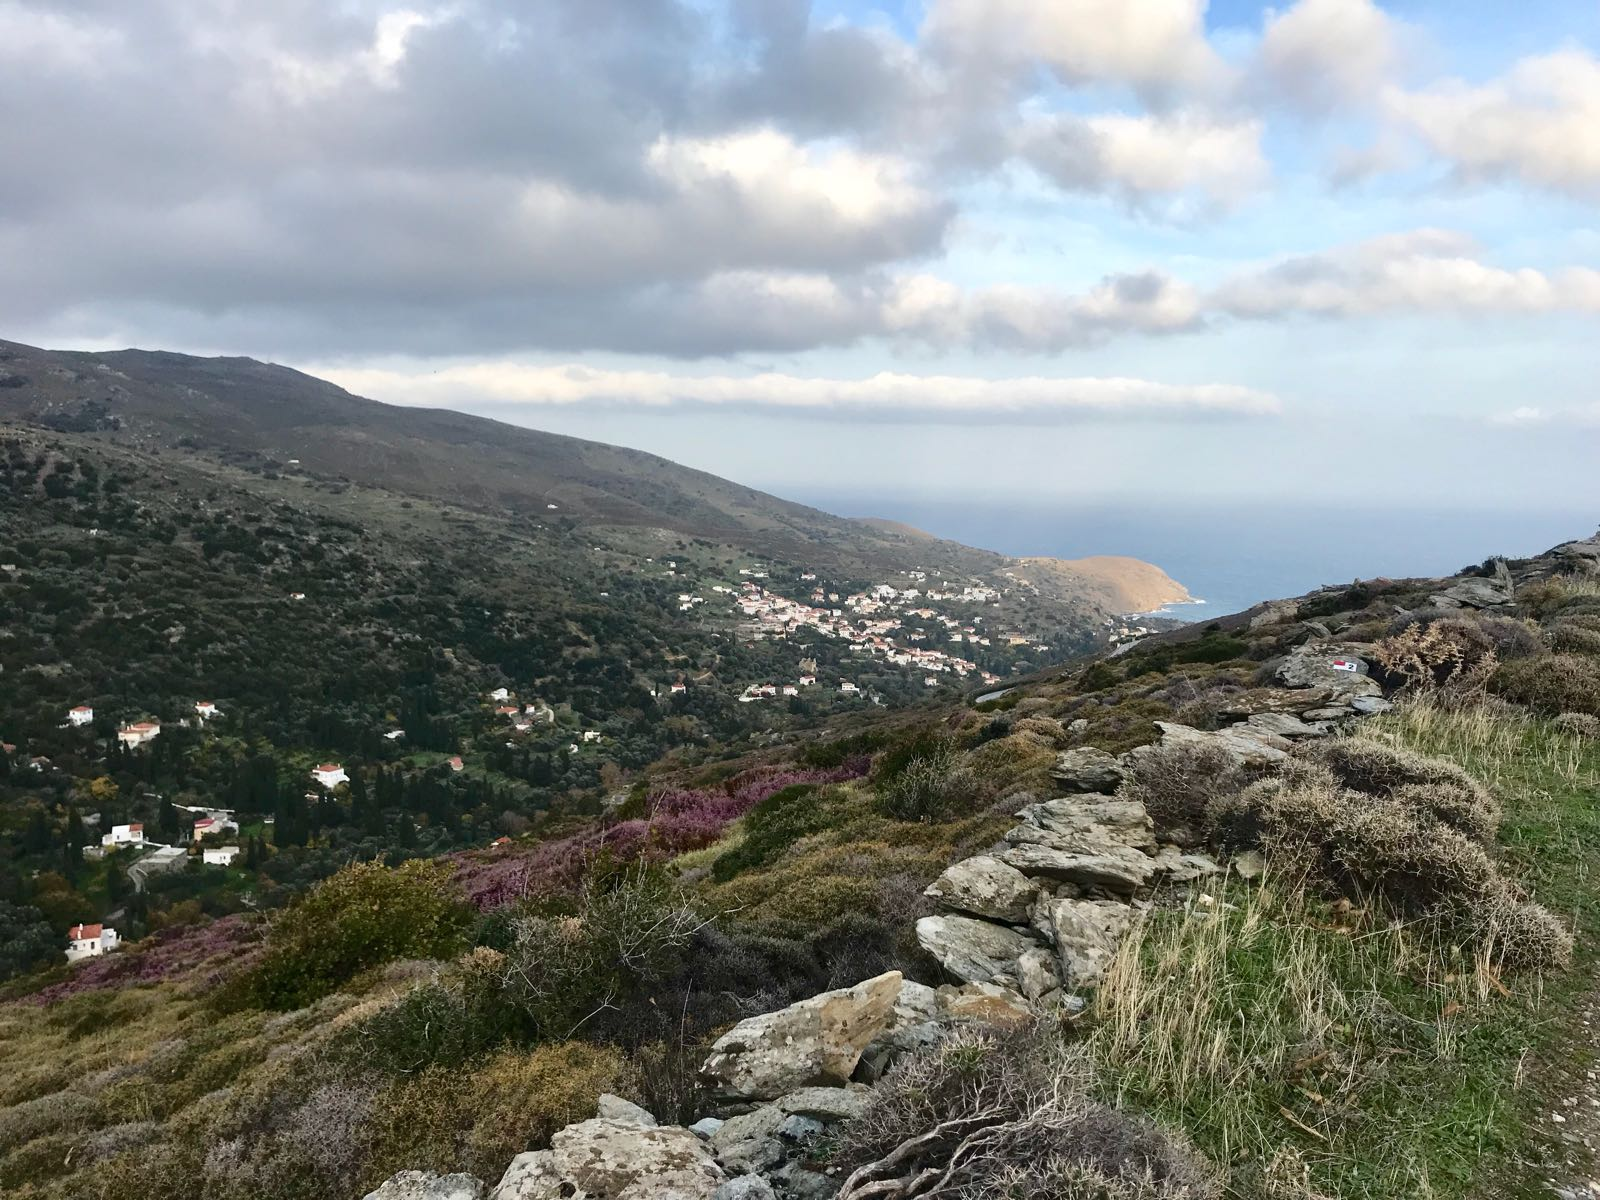 View to the beach for Steines on Andros